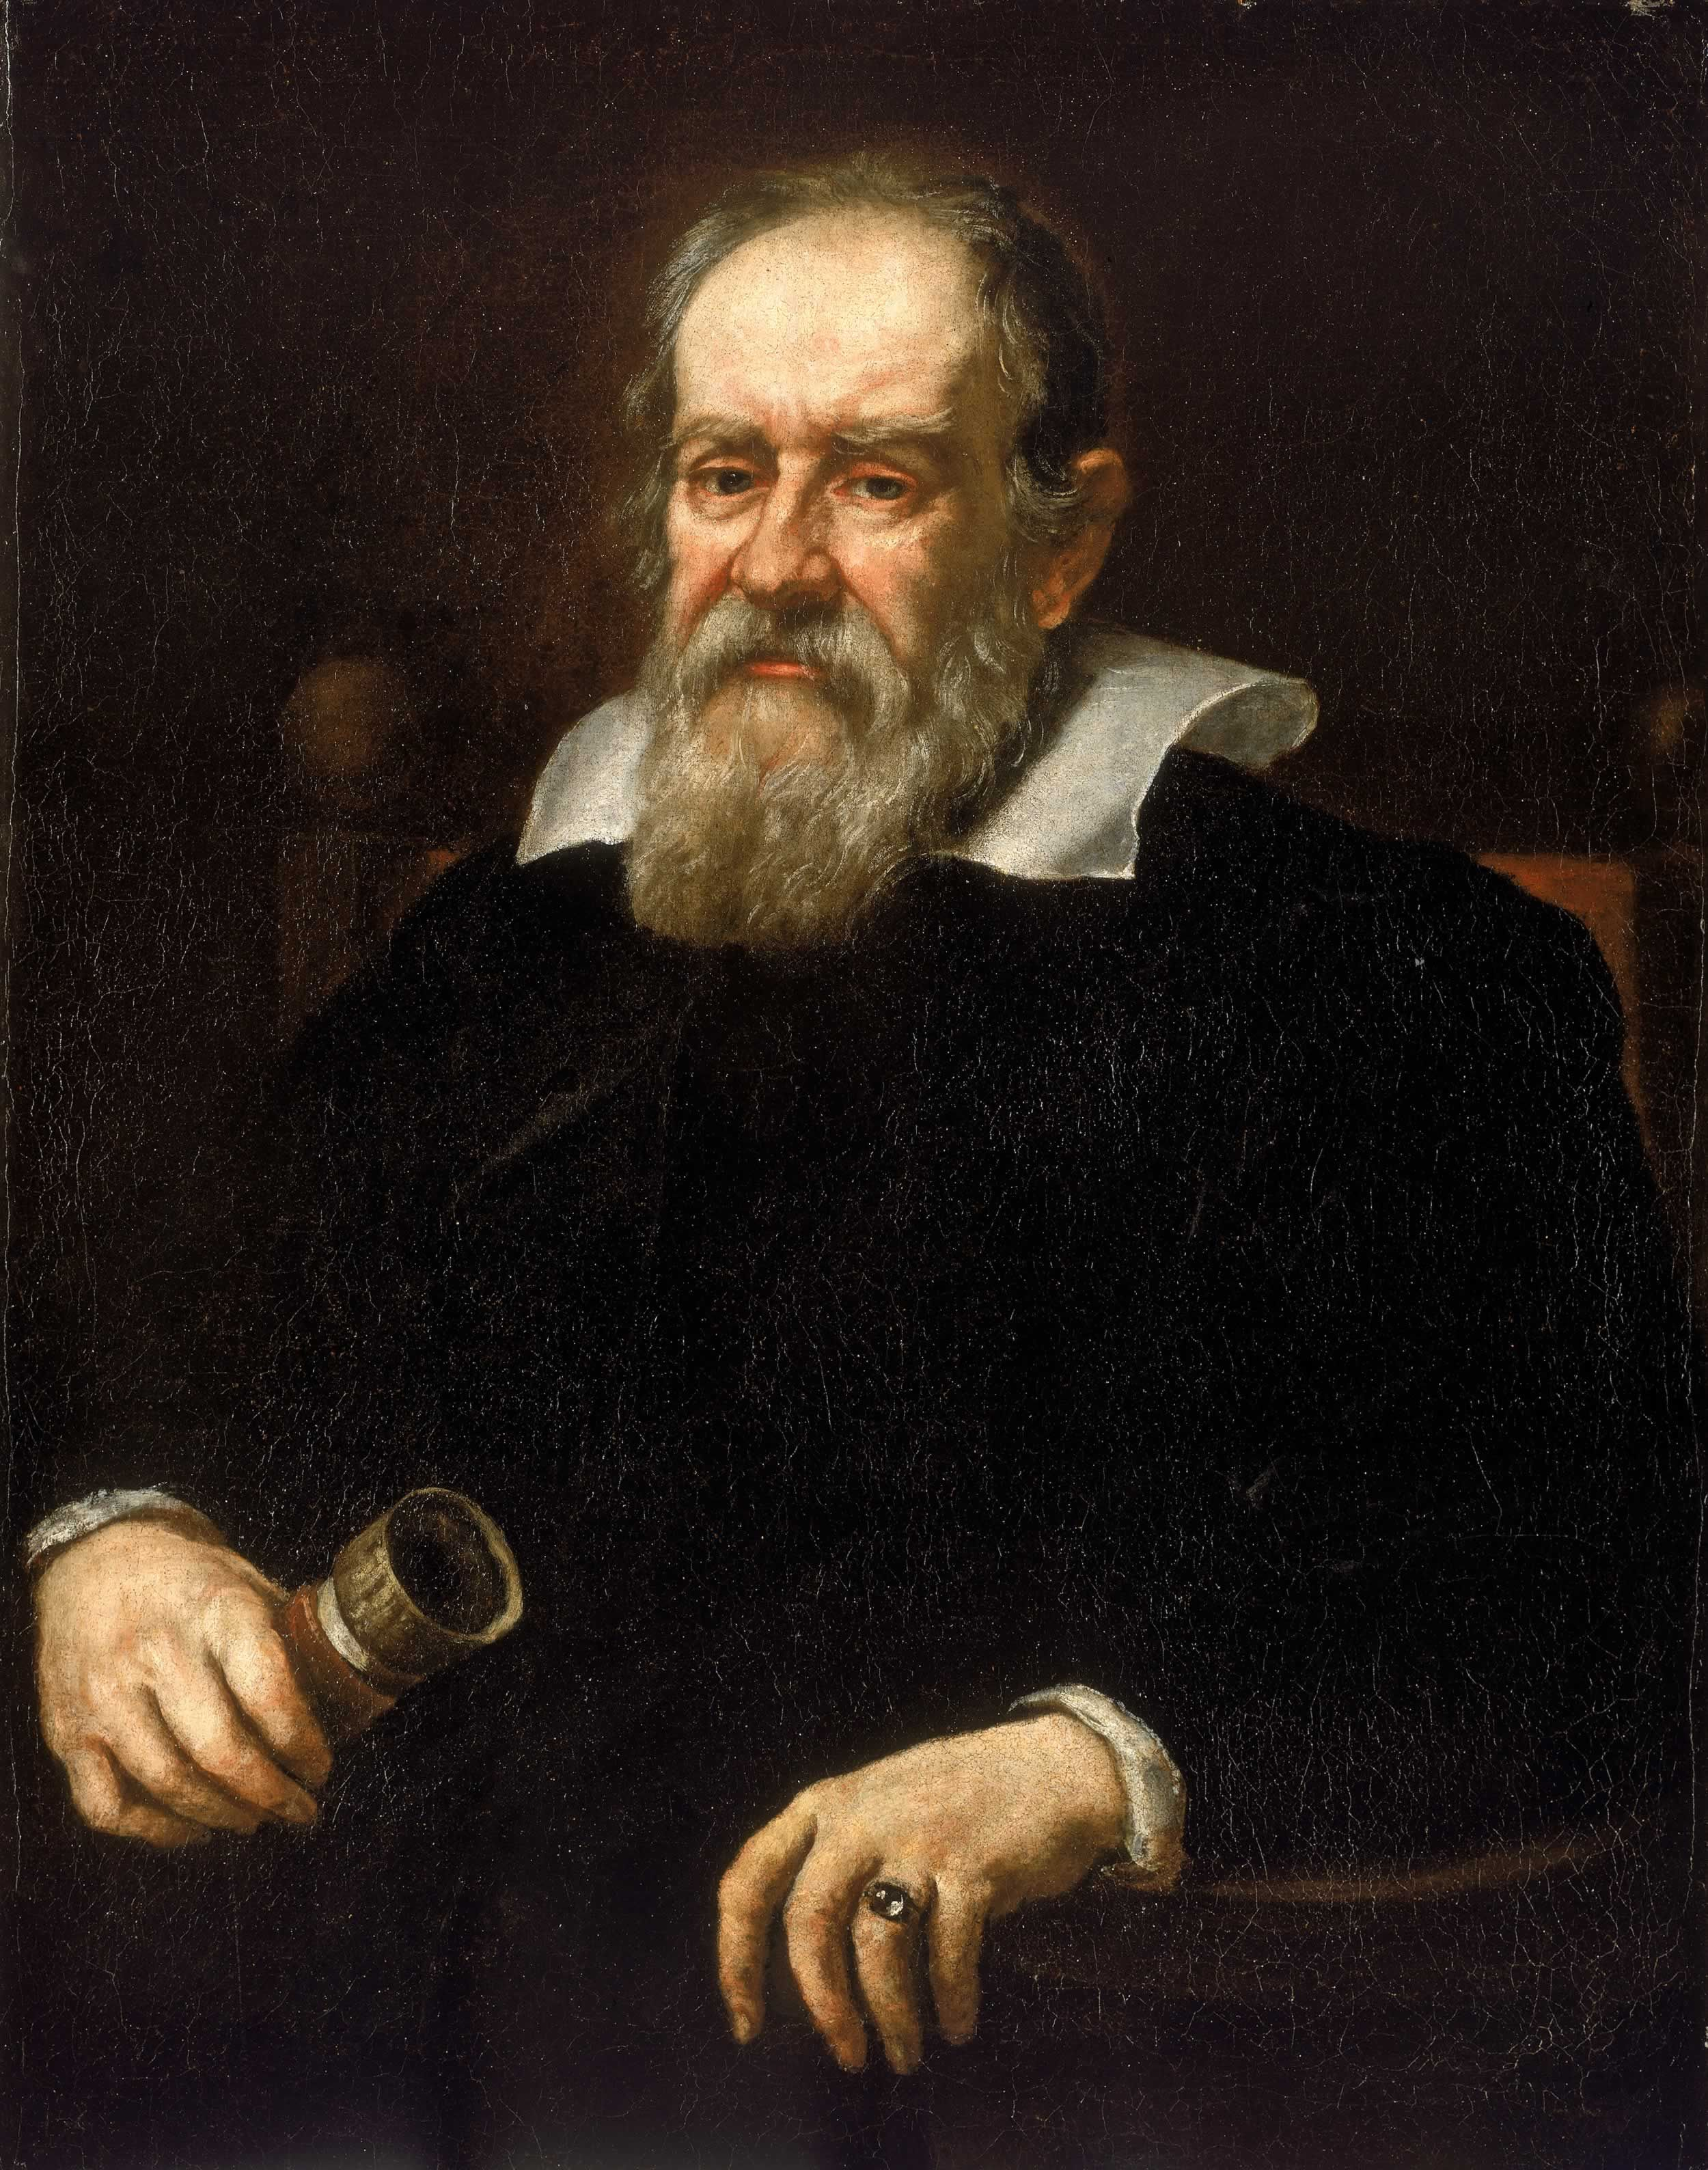 galileo galilei physicist astronomer genius spent  galileo is a famous astronomer whos achievements include improvements to the telescope and evidence to support copernicanism